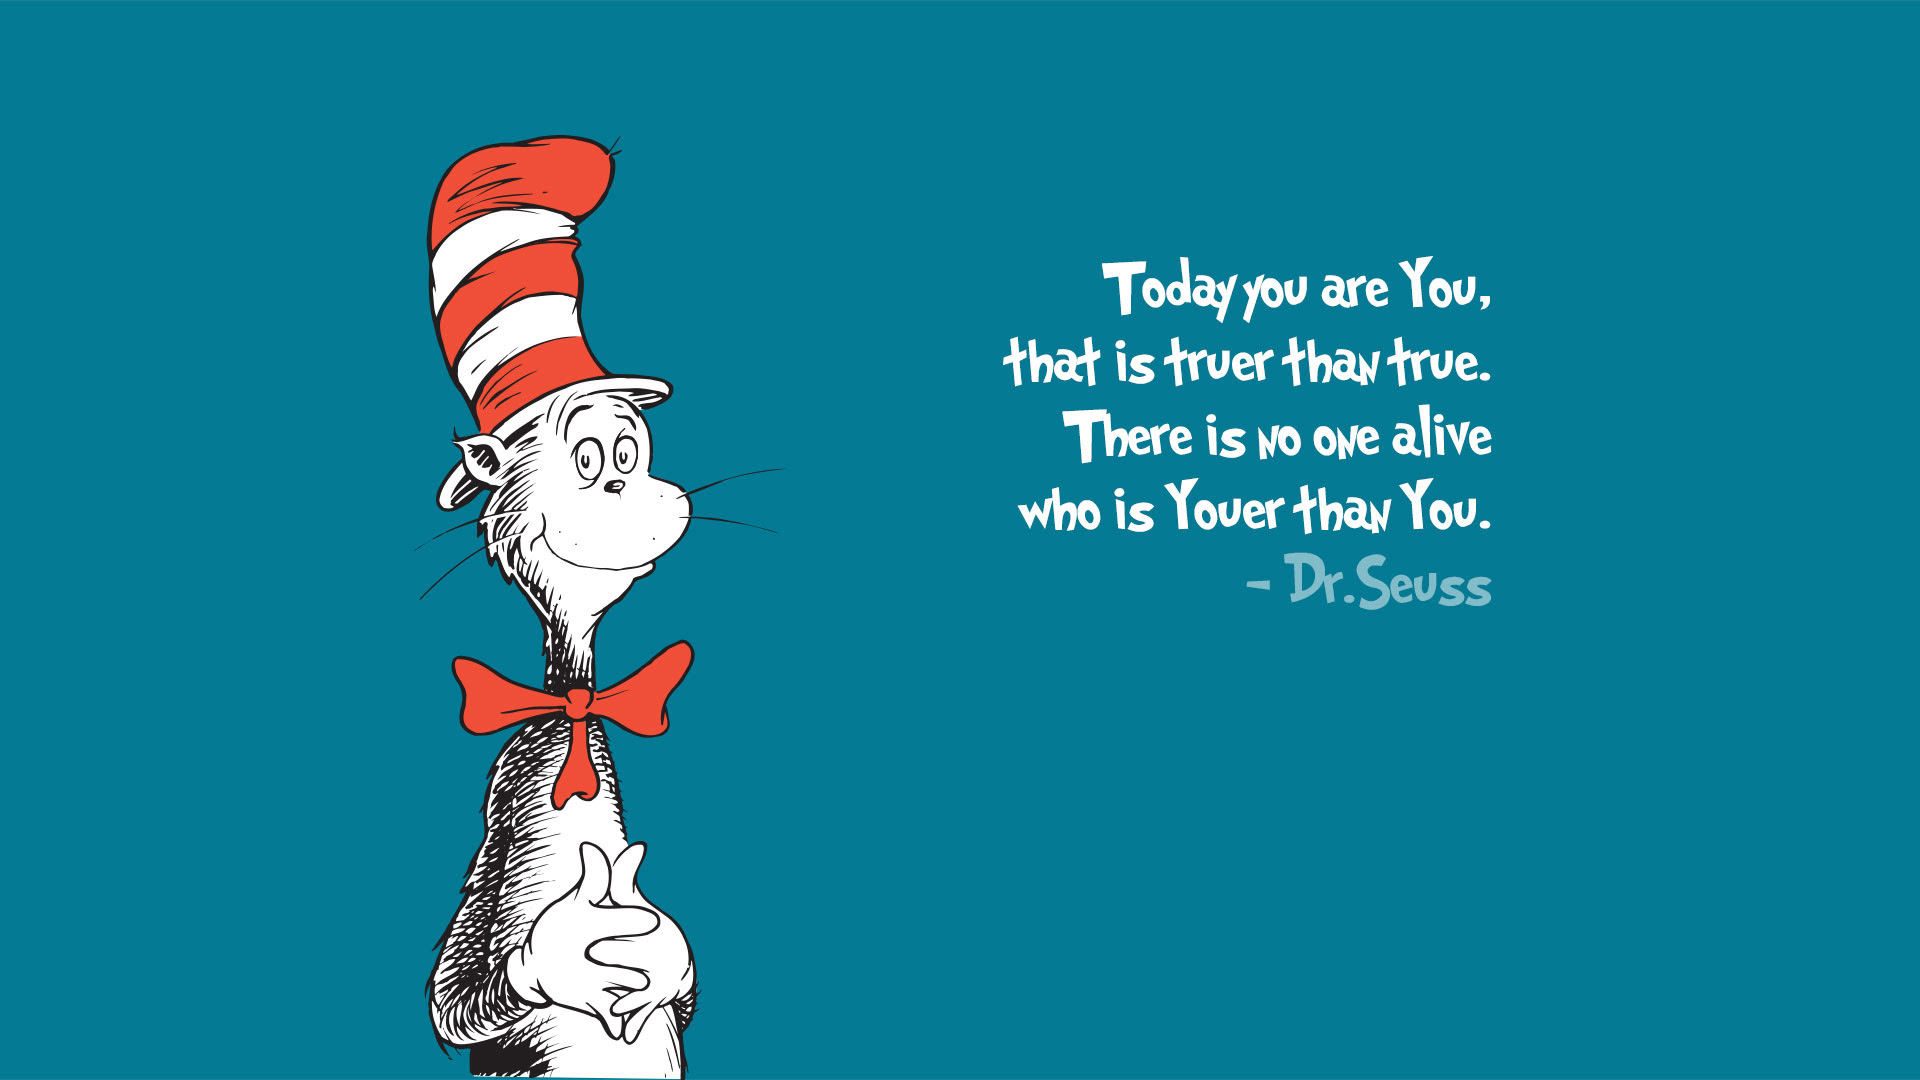 Today You Are You Dr Seuss Xpost On Rwallpapers 1920x1080